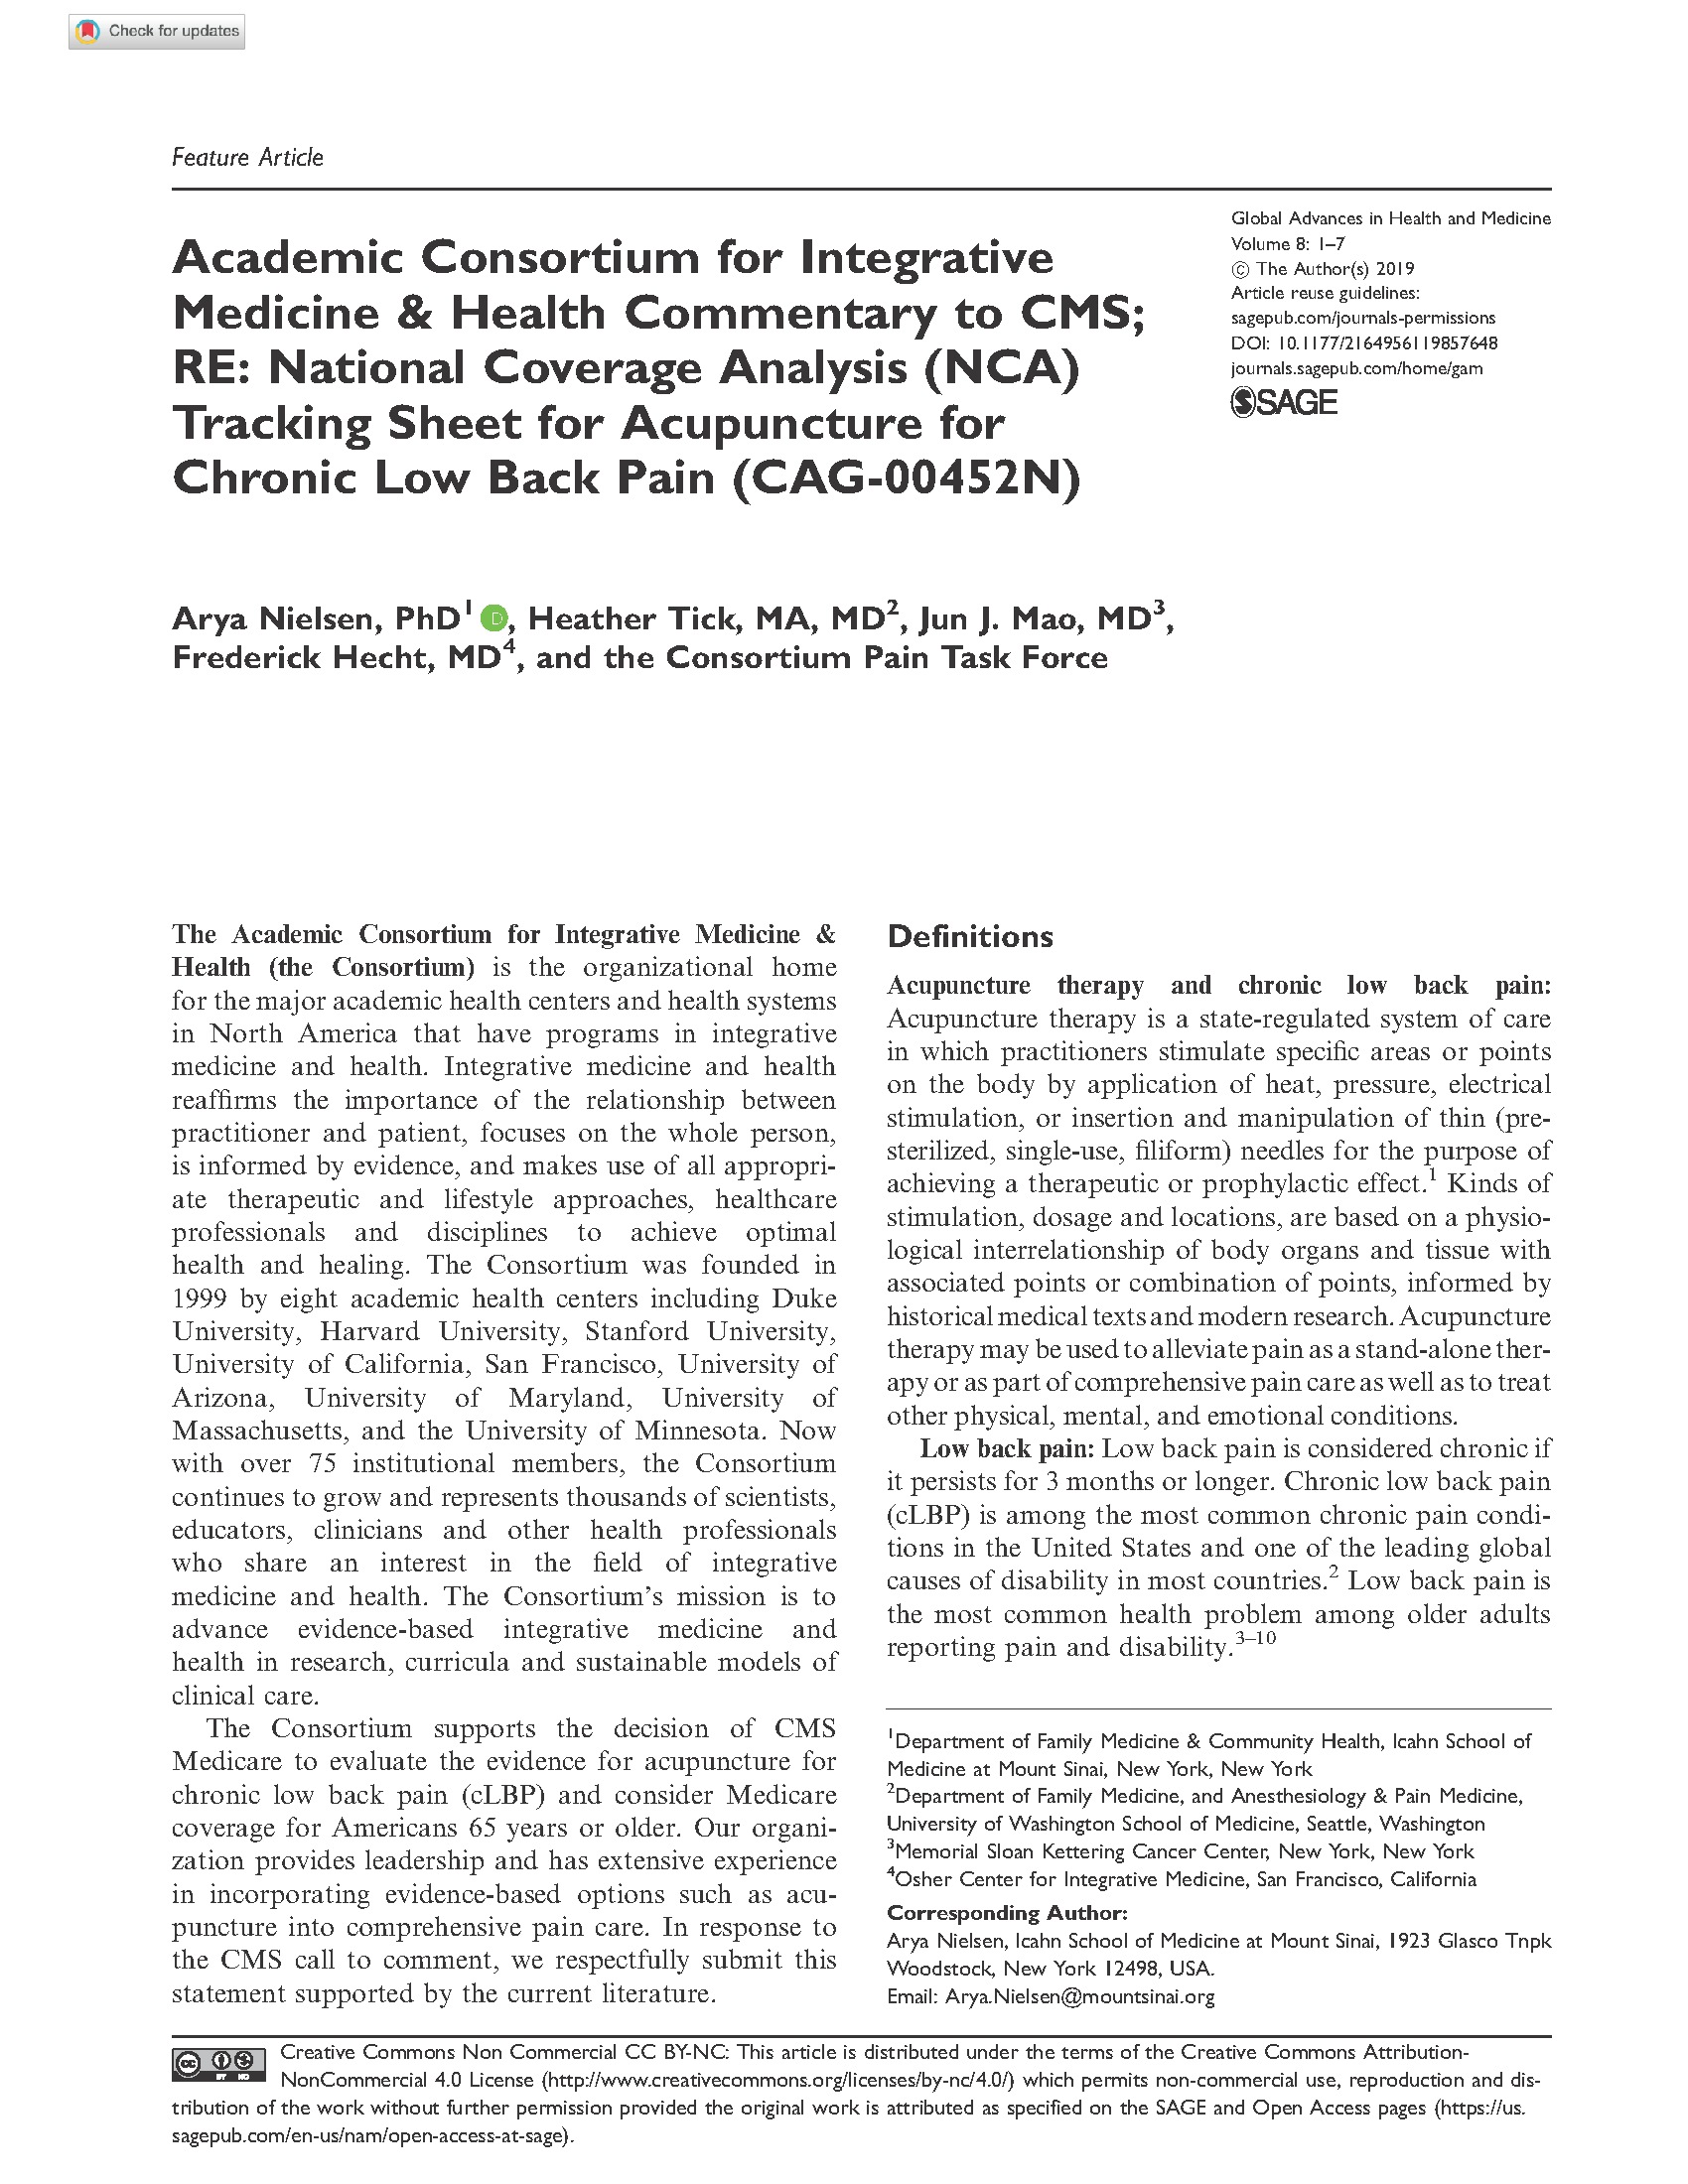 ACIMH Commentary to CMS; RE: NCA Tracking Sheet for Acupuncture for Chronic Low Back Pain